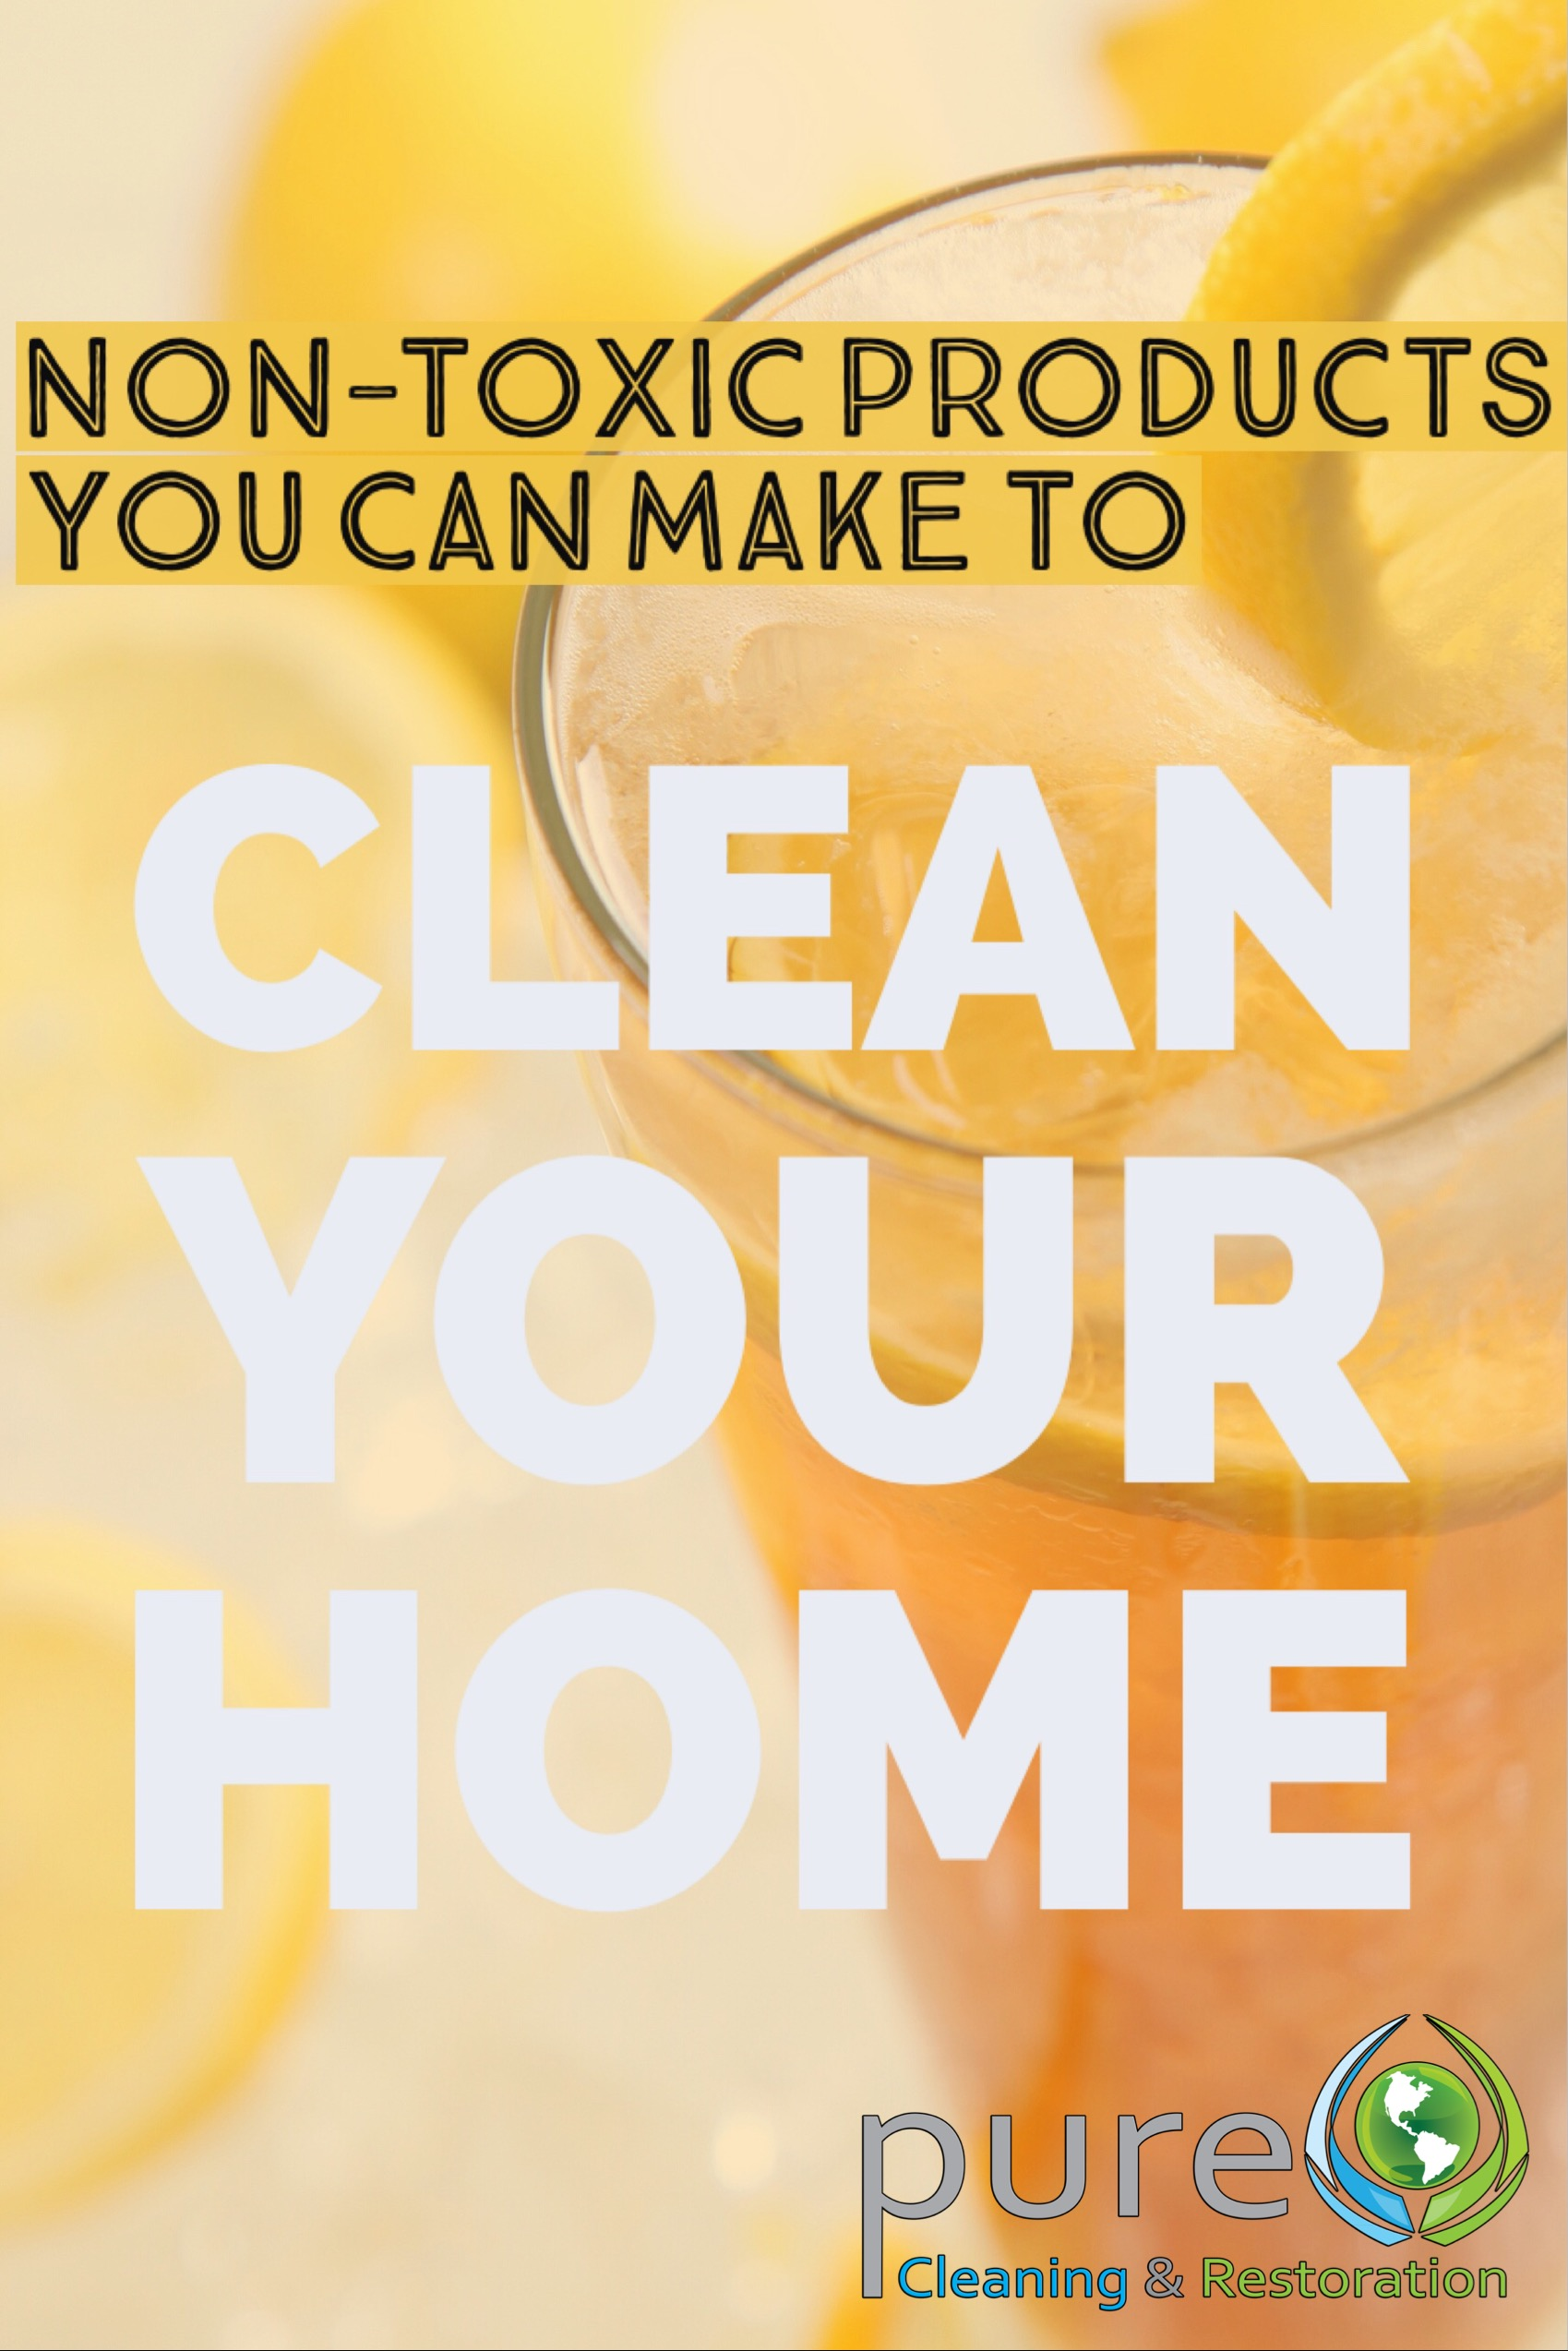 non-toxic products, safe cleaning, pure cleaning, chemicals, carpet cleaning